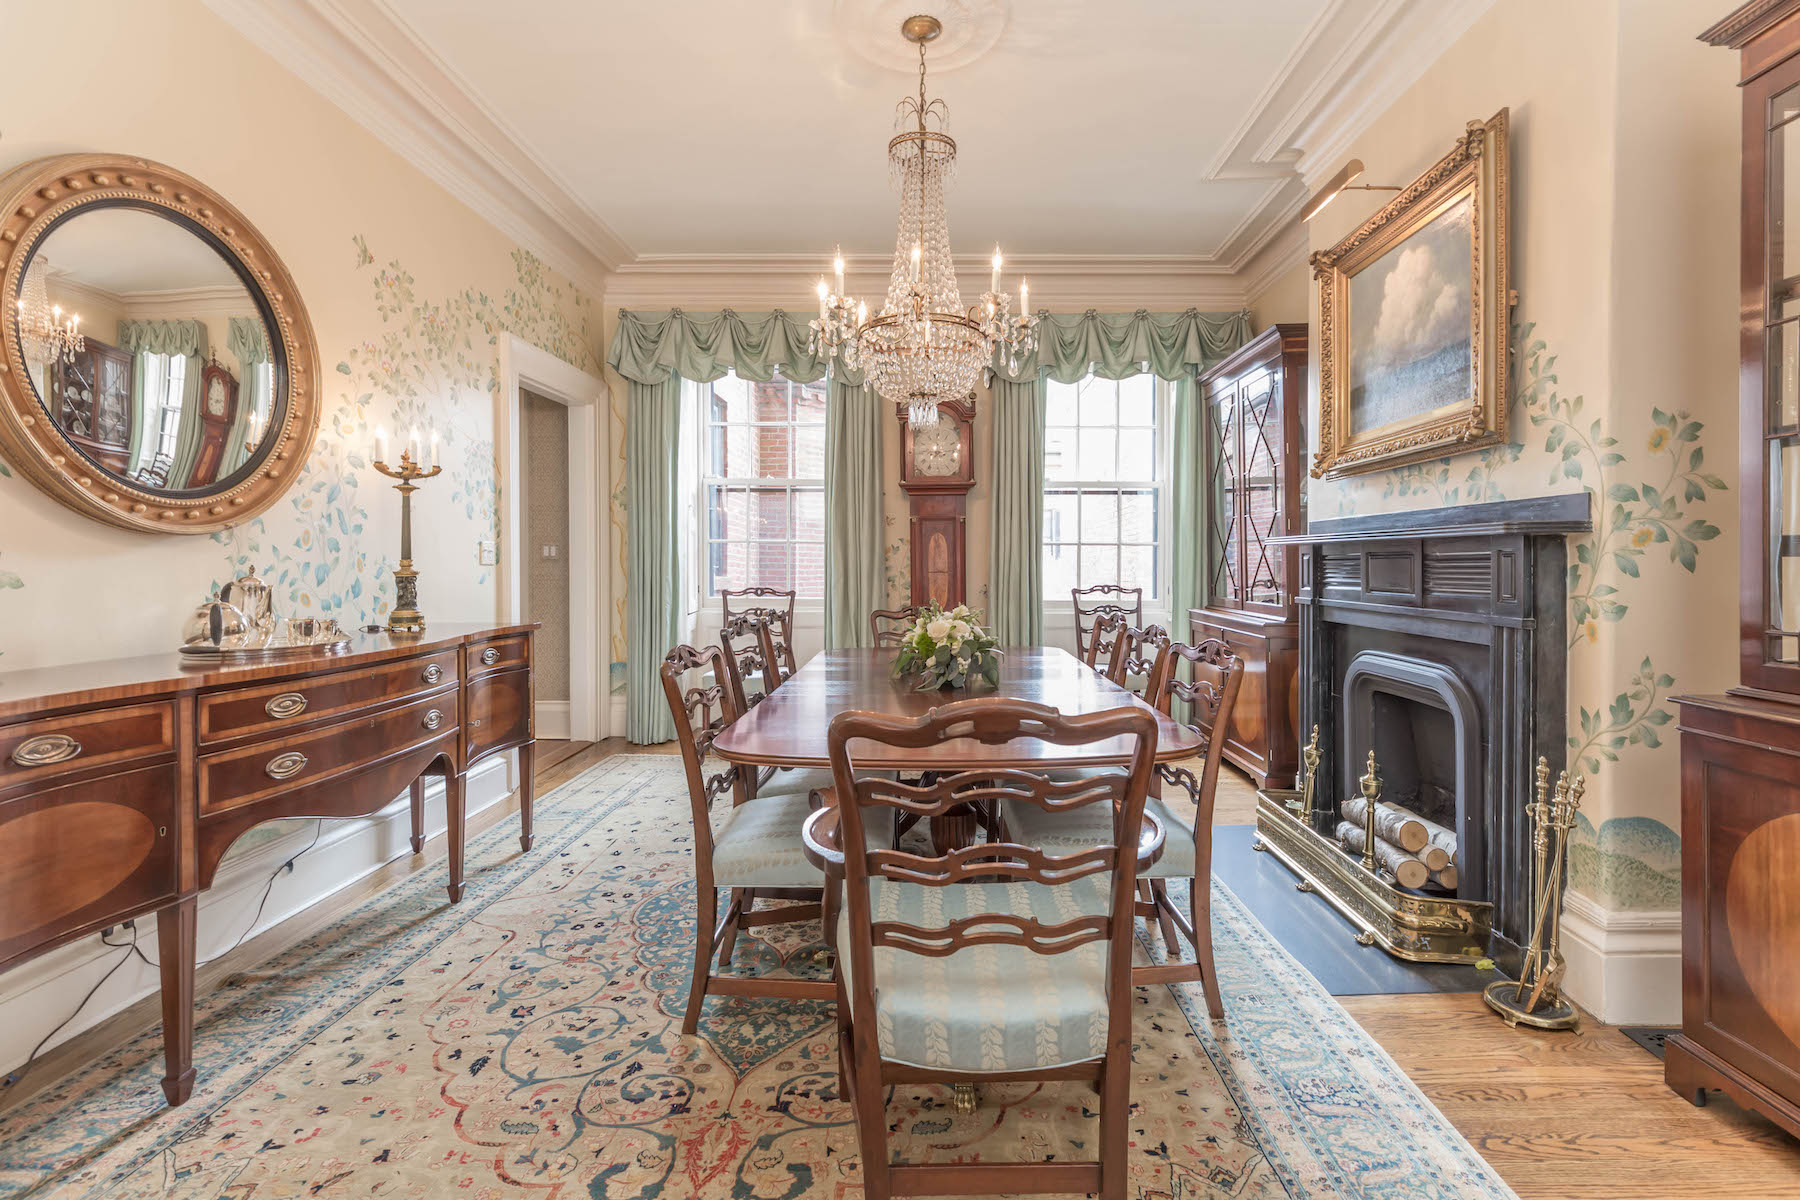 Single Family Homes for Active at Refined Brick Townhouse On Beacon Hill 20 West Cedar Street Boston, Massachusetts 02108 United States